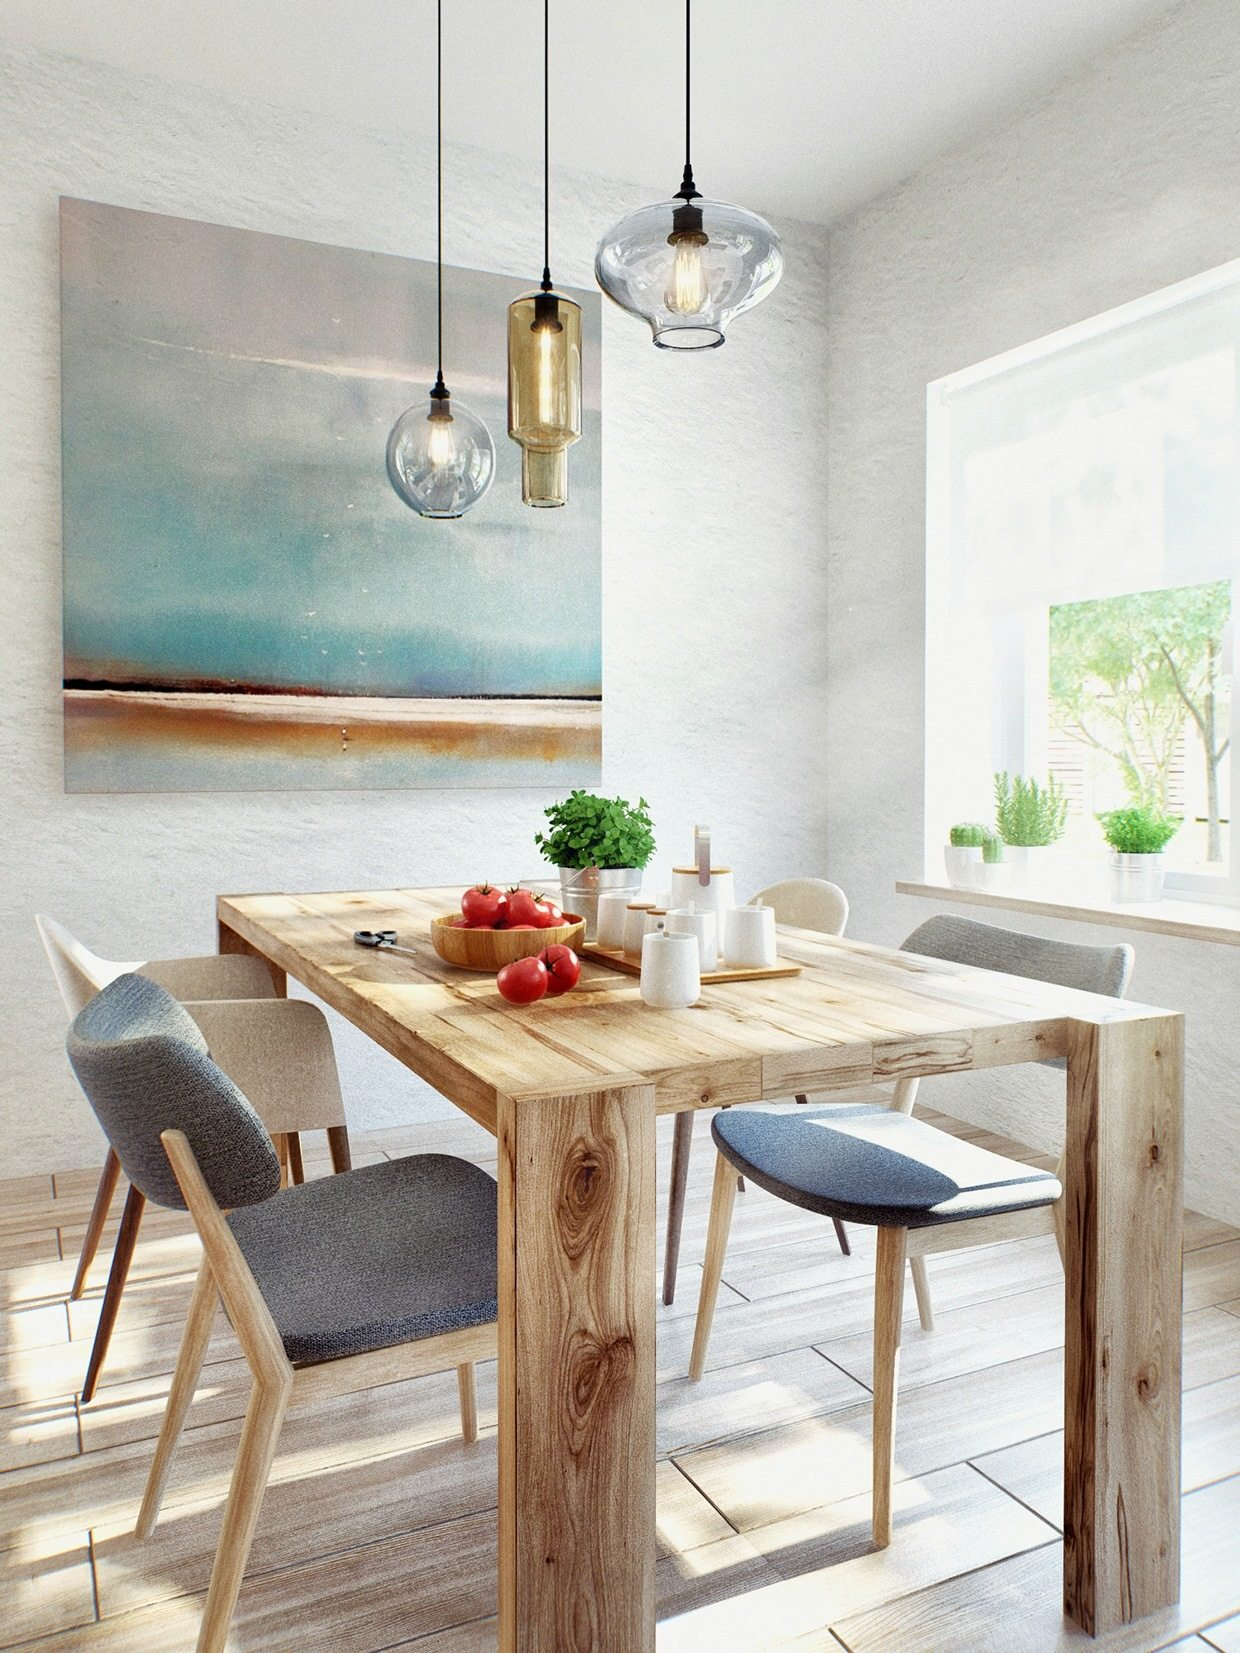 Applying Scandinavian Dining Room Designs Completed With